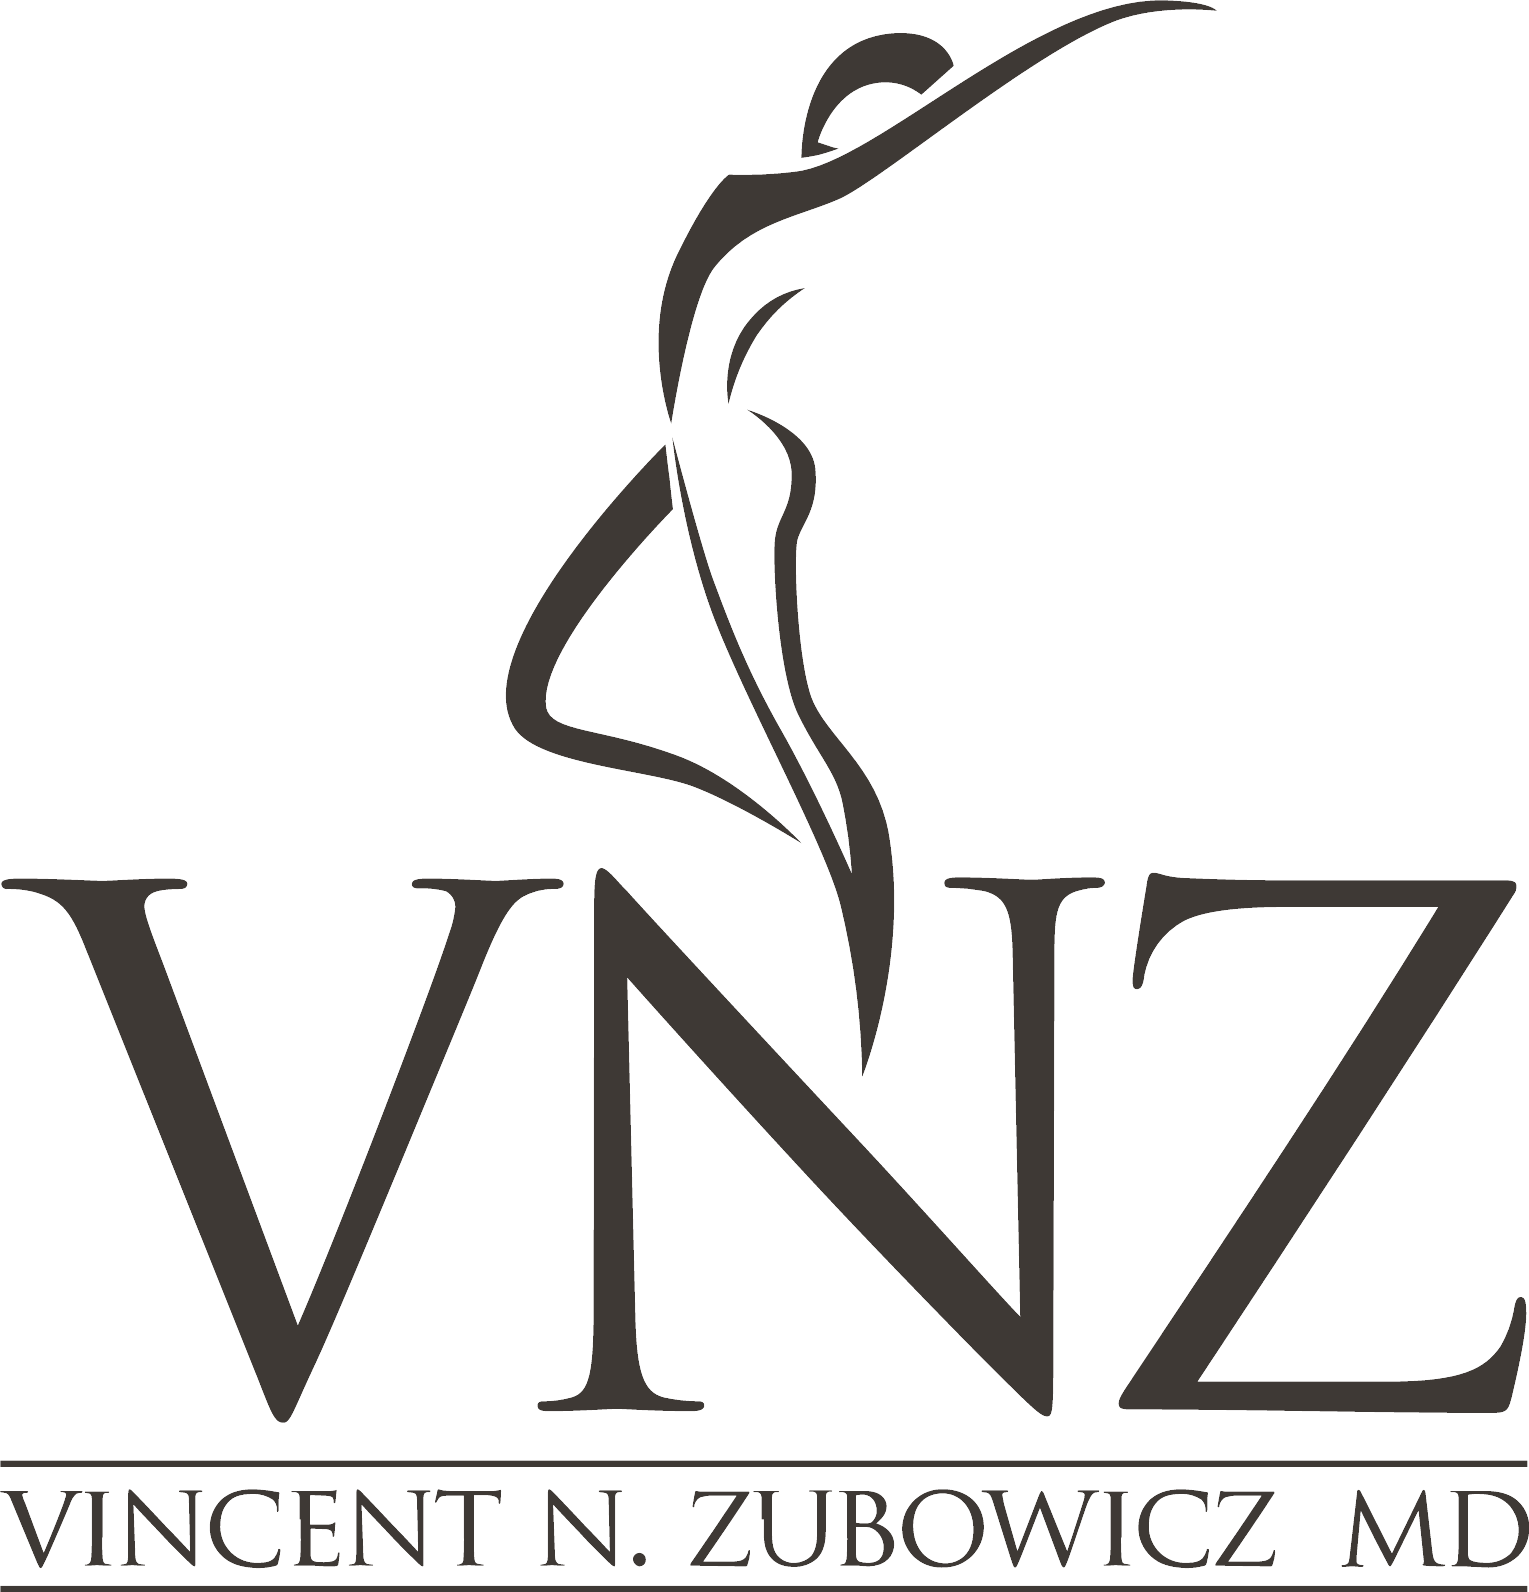 VINCENT N. ZUBOWICZ MD VNZ Plastic Surgery Emory University Hospital & Health Clinic 5 Star Rated Facelift and Breast Aug Makeover